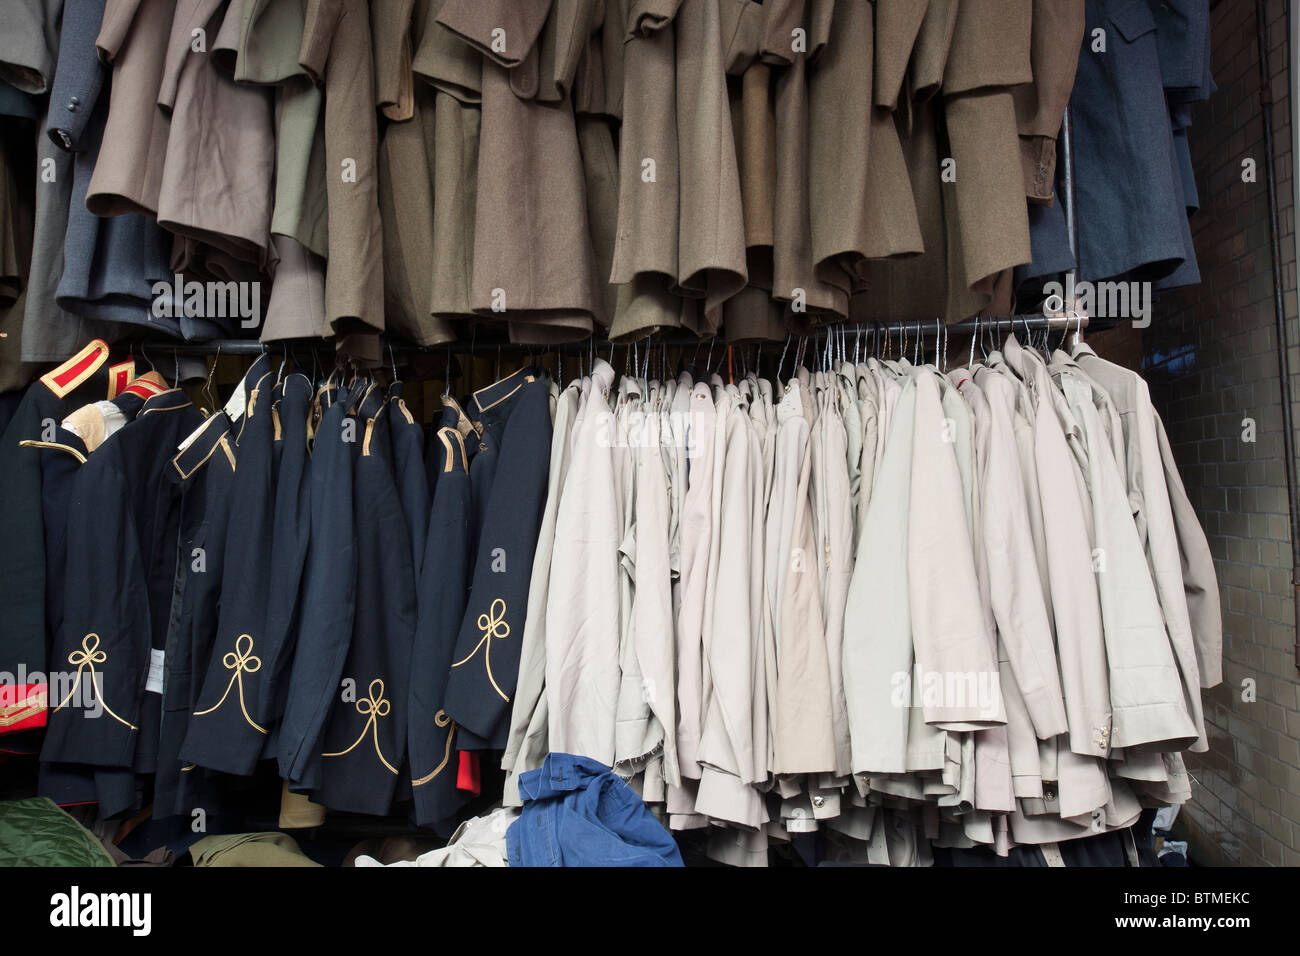 Racks of military clothing in Army Surplus Store Stock Photo